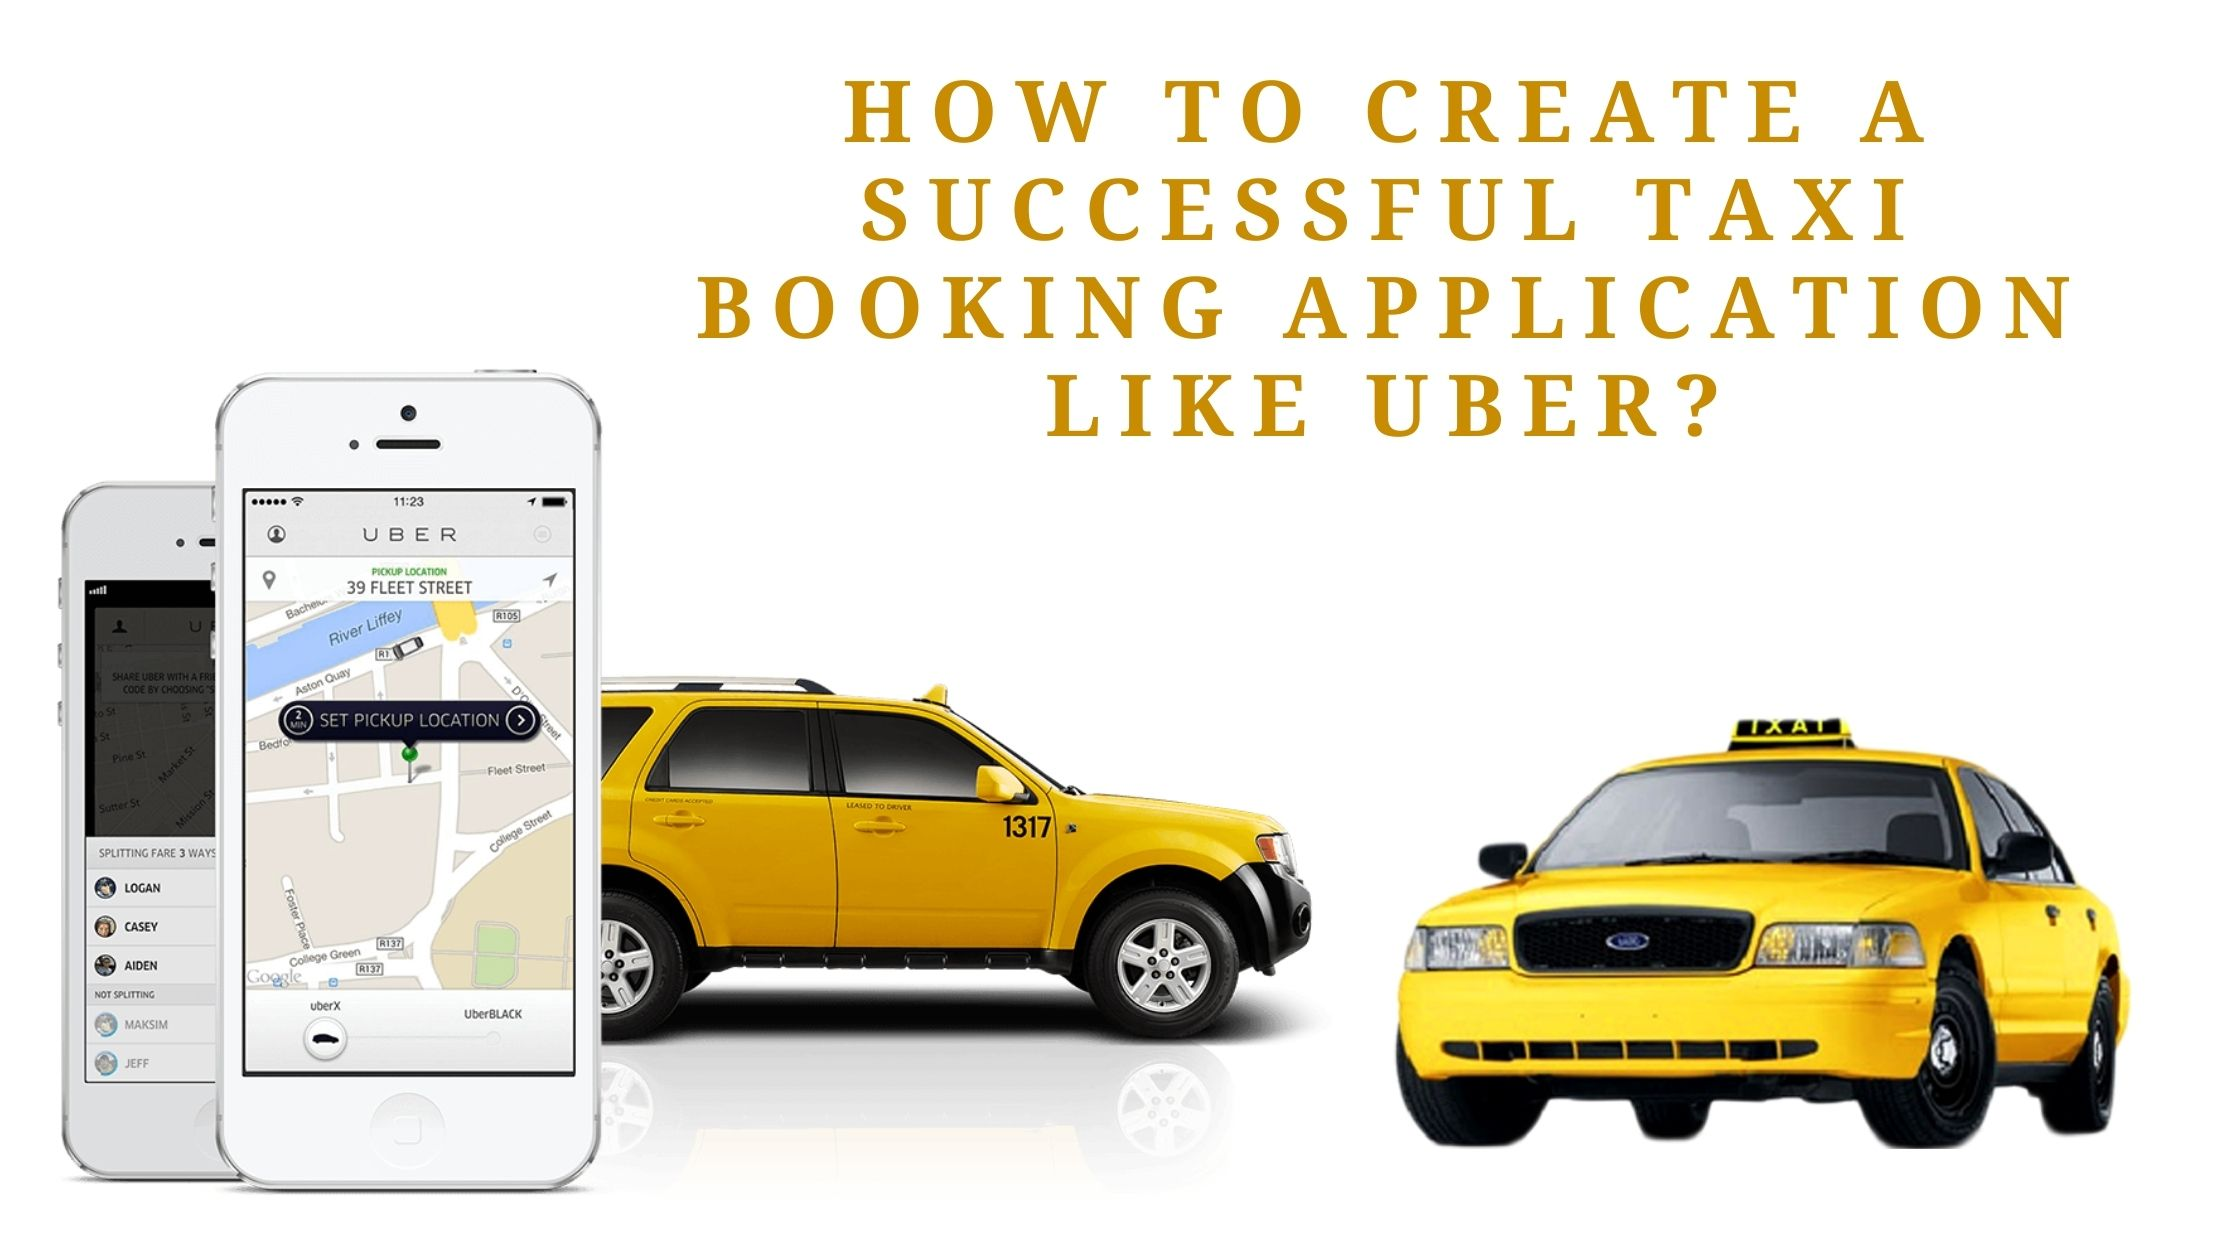 How to create a successful taxi booking application like Uber